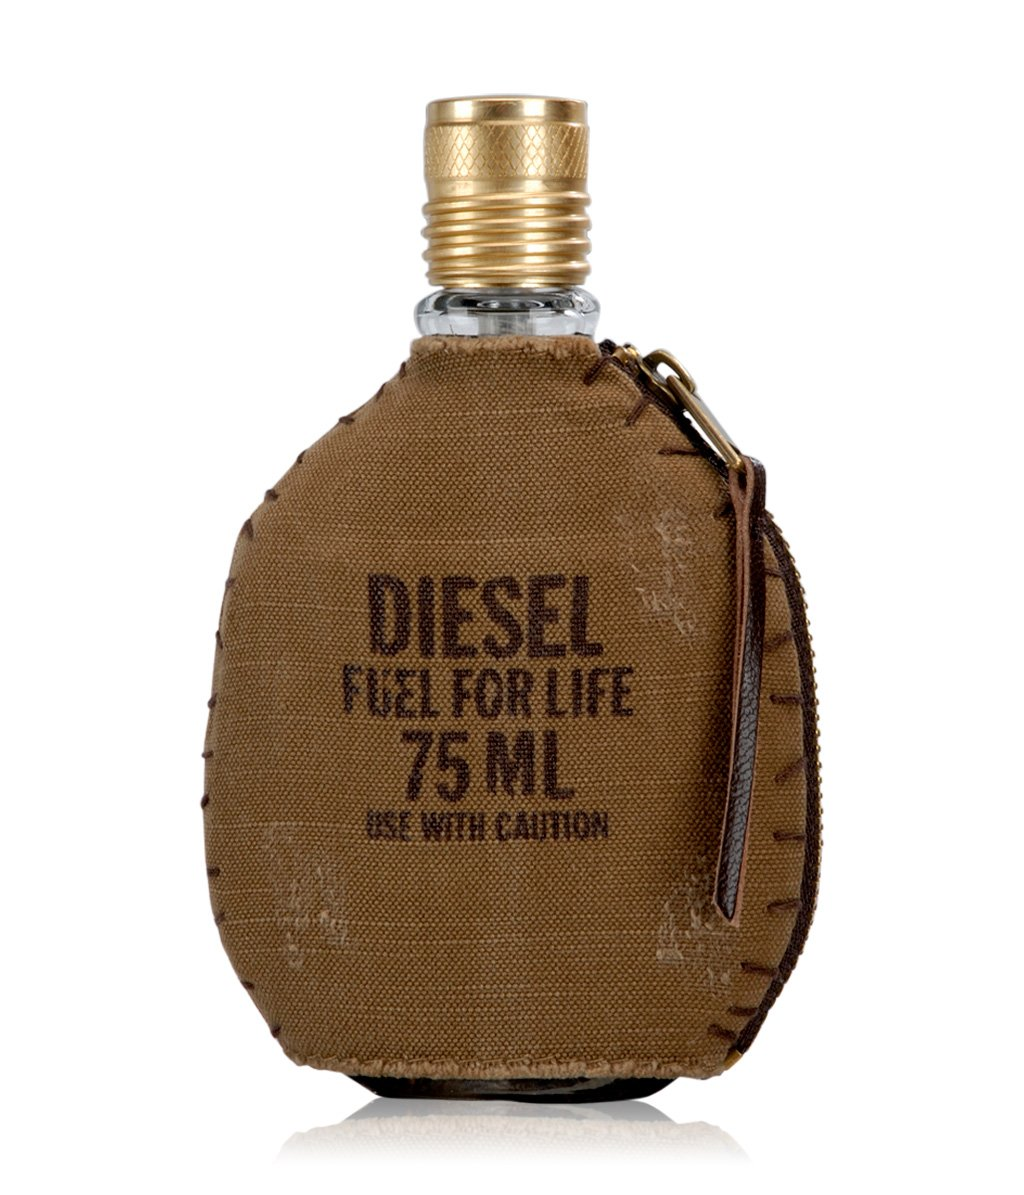 diesel fuel for life homme online bestellen flaconi. Black Bedroom Furniture Sets. Home Design Ideas